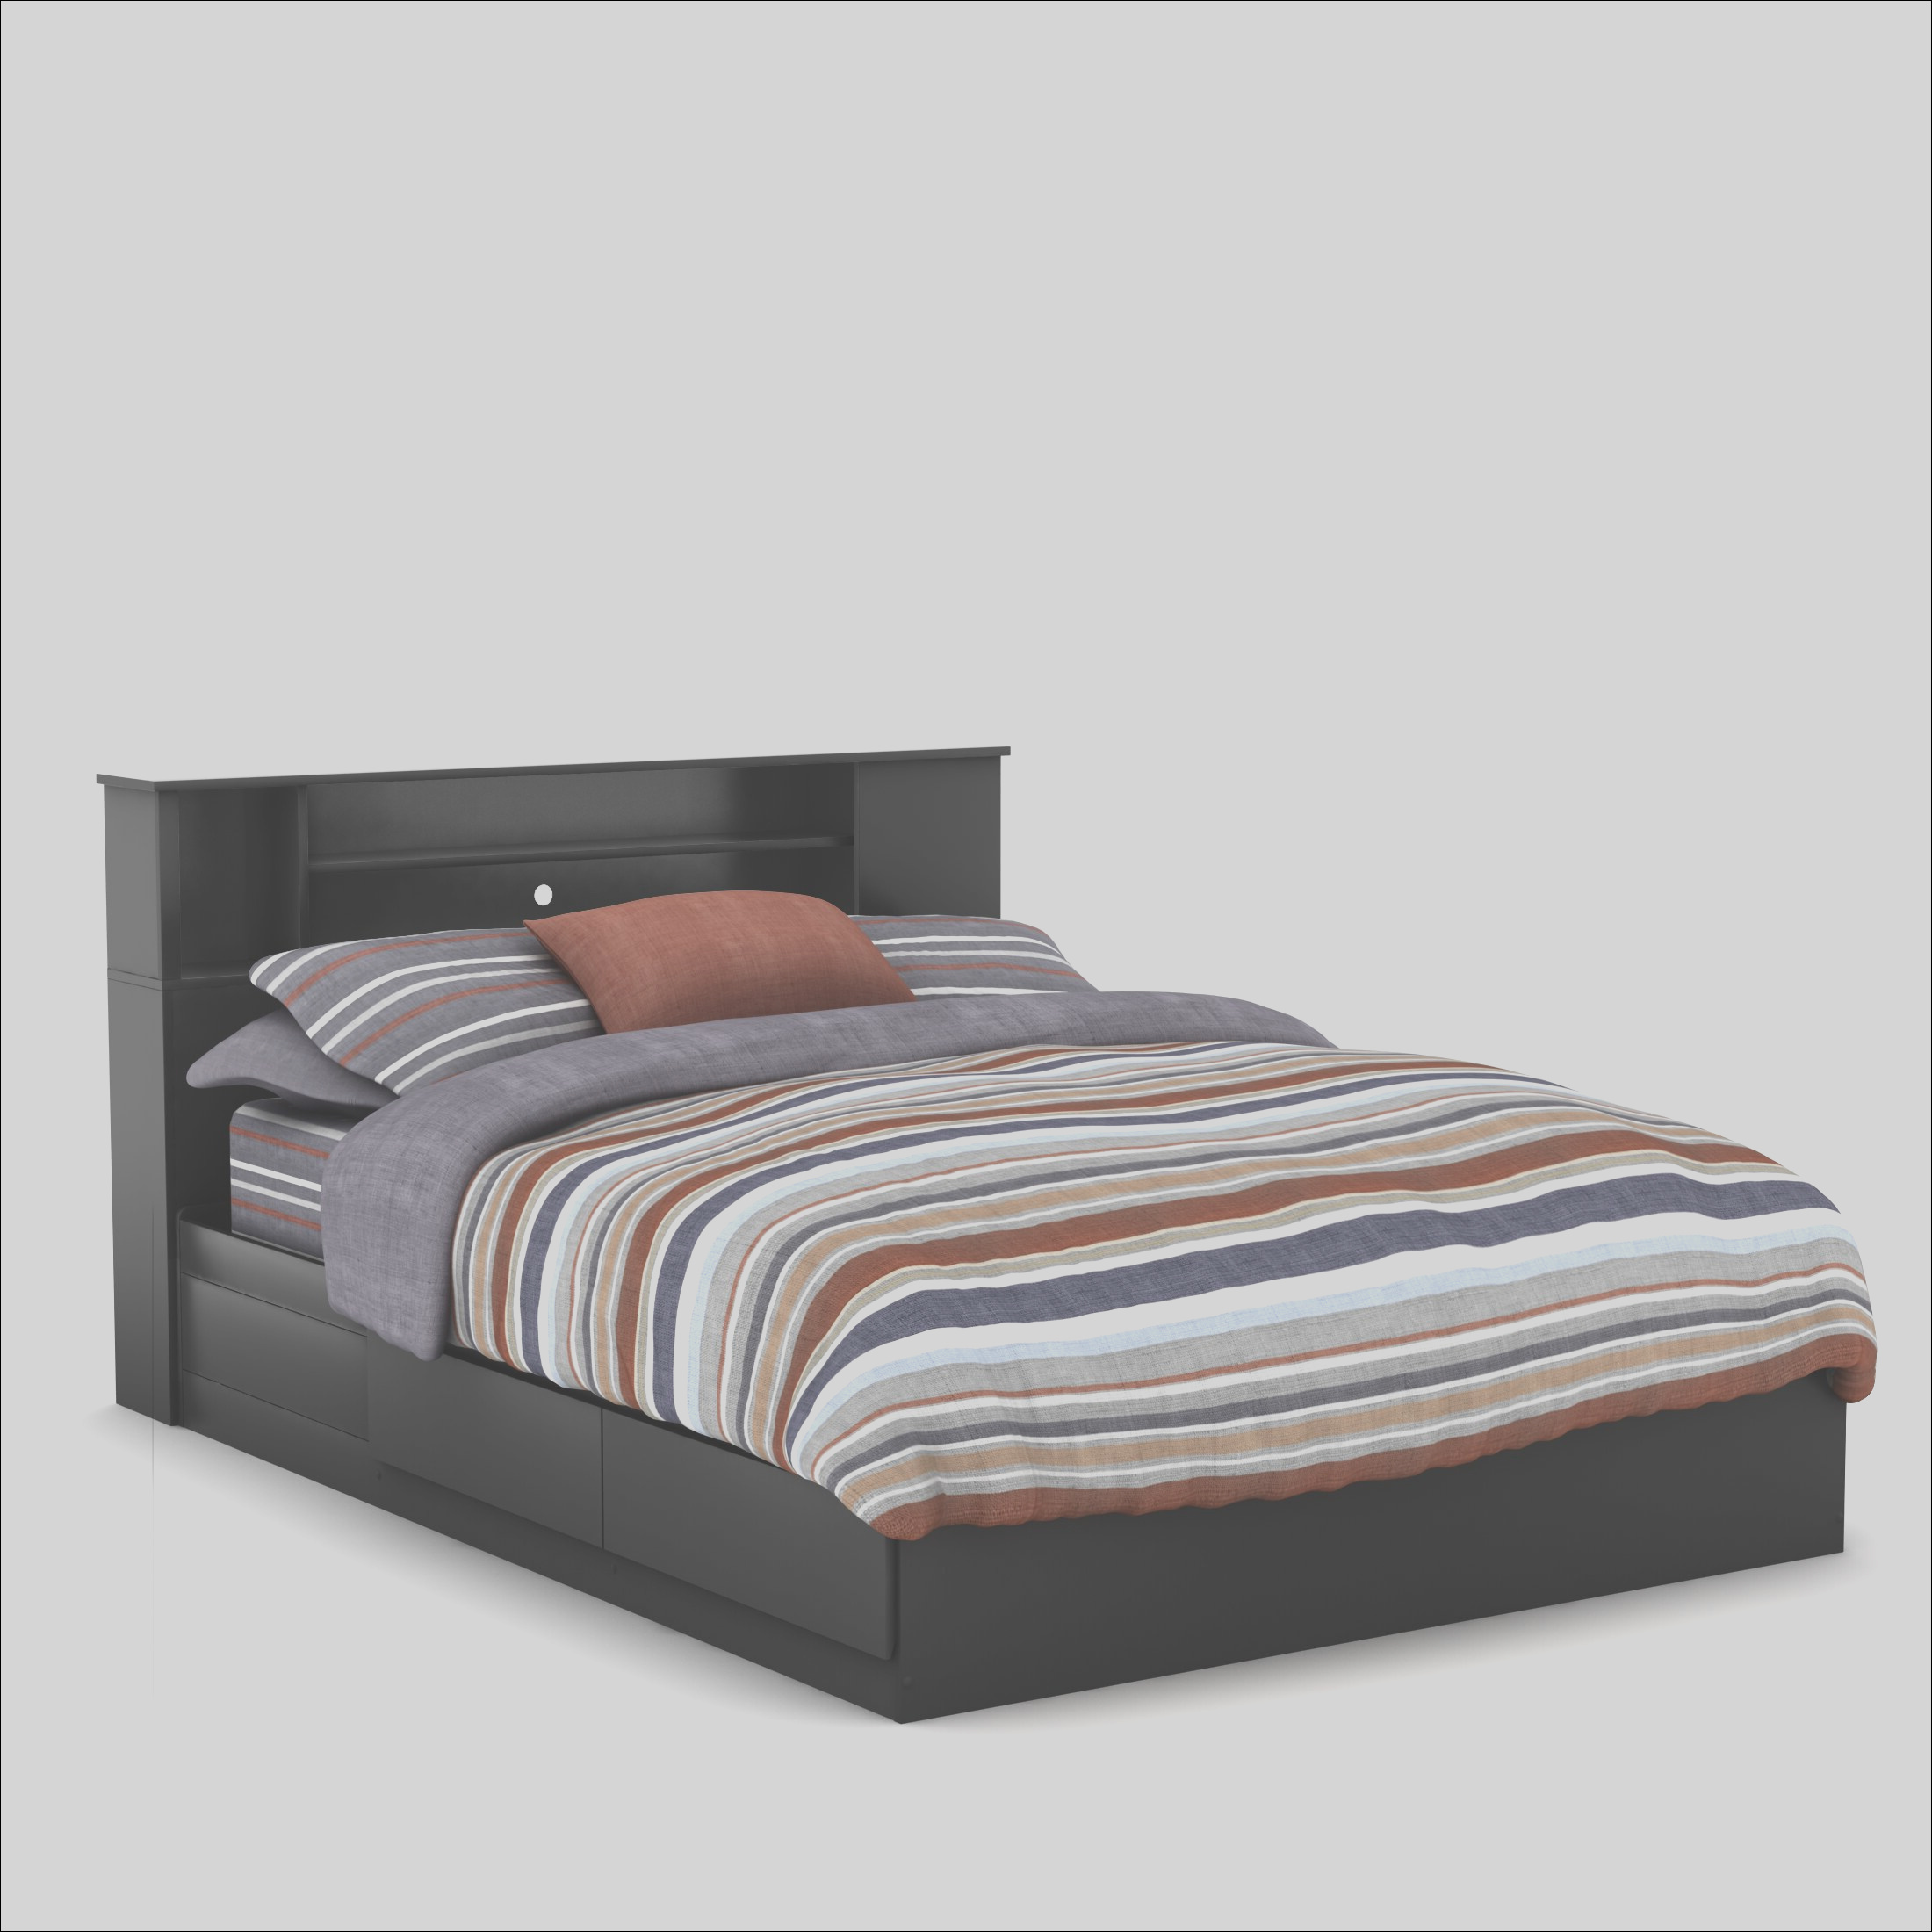 South Shore Fusion Queen Mates Bed 900 TH3411